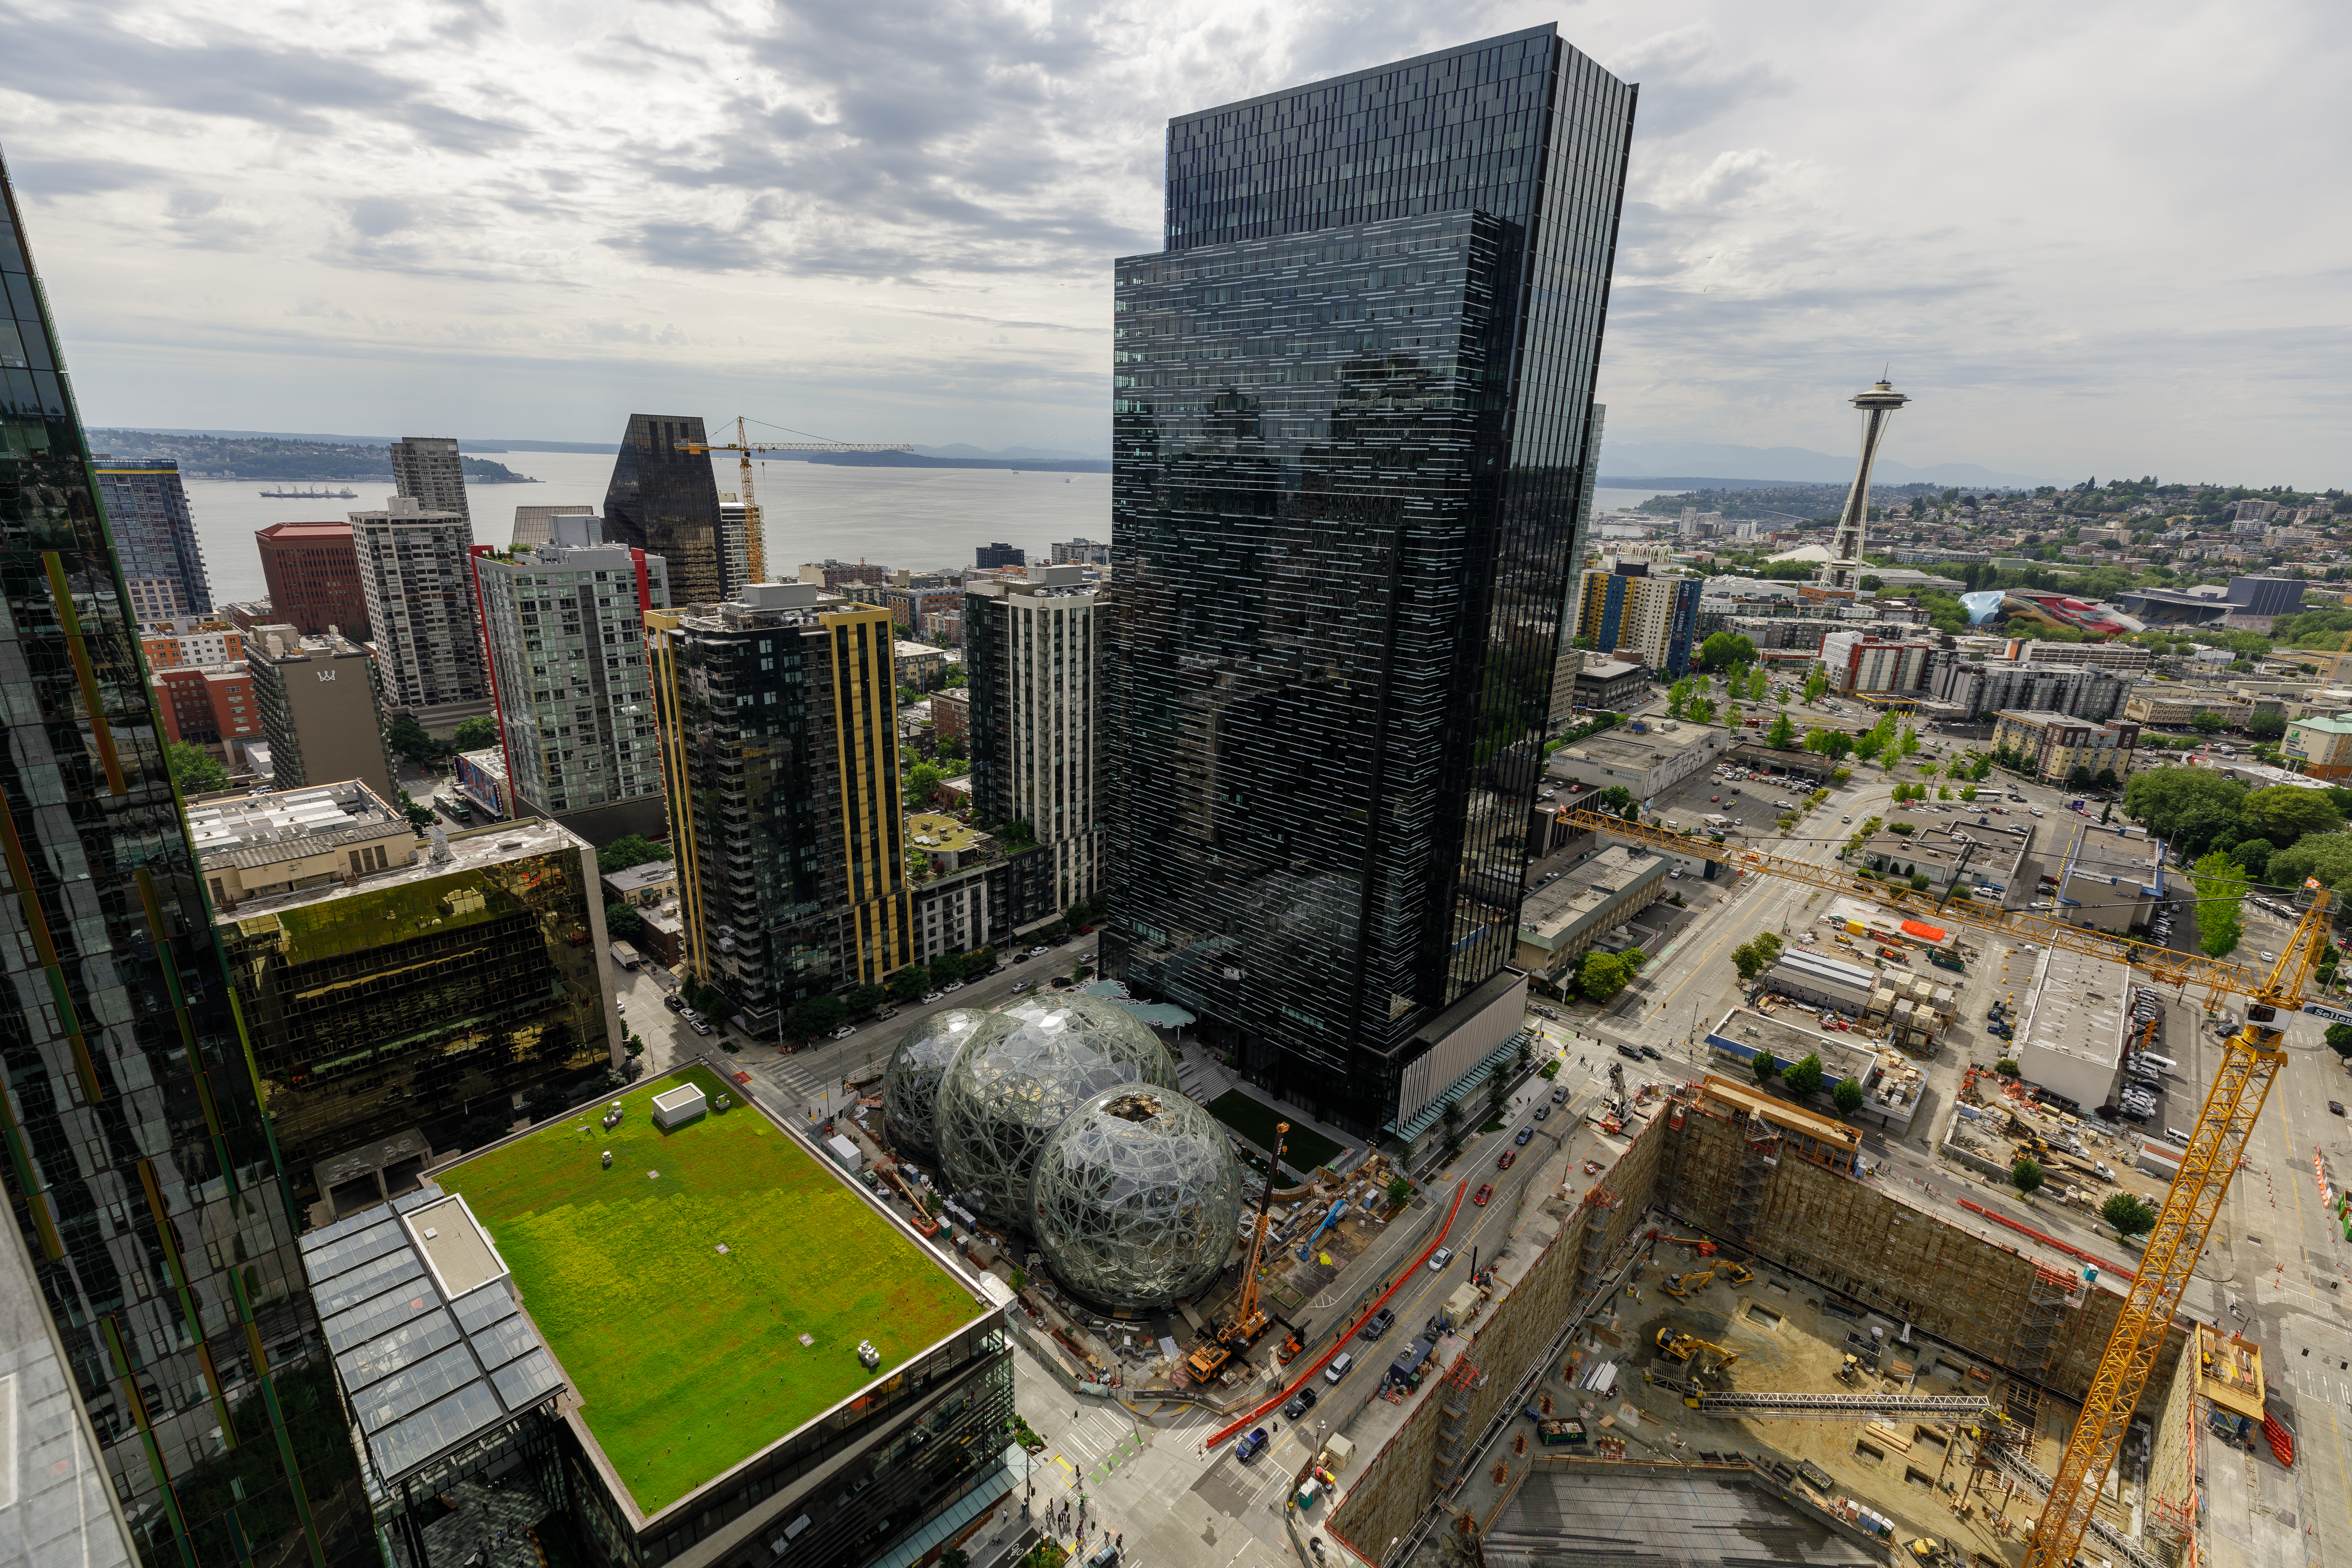 Amazon's Seattle Campus 2017